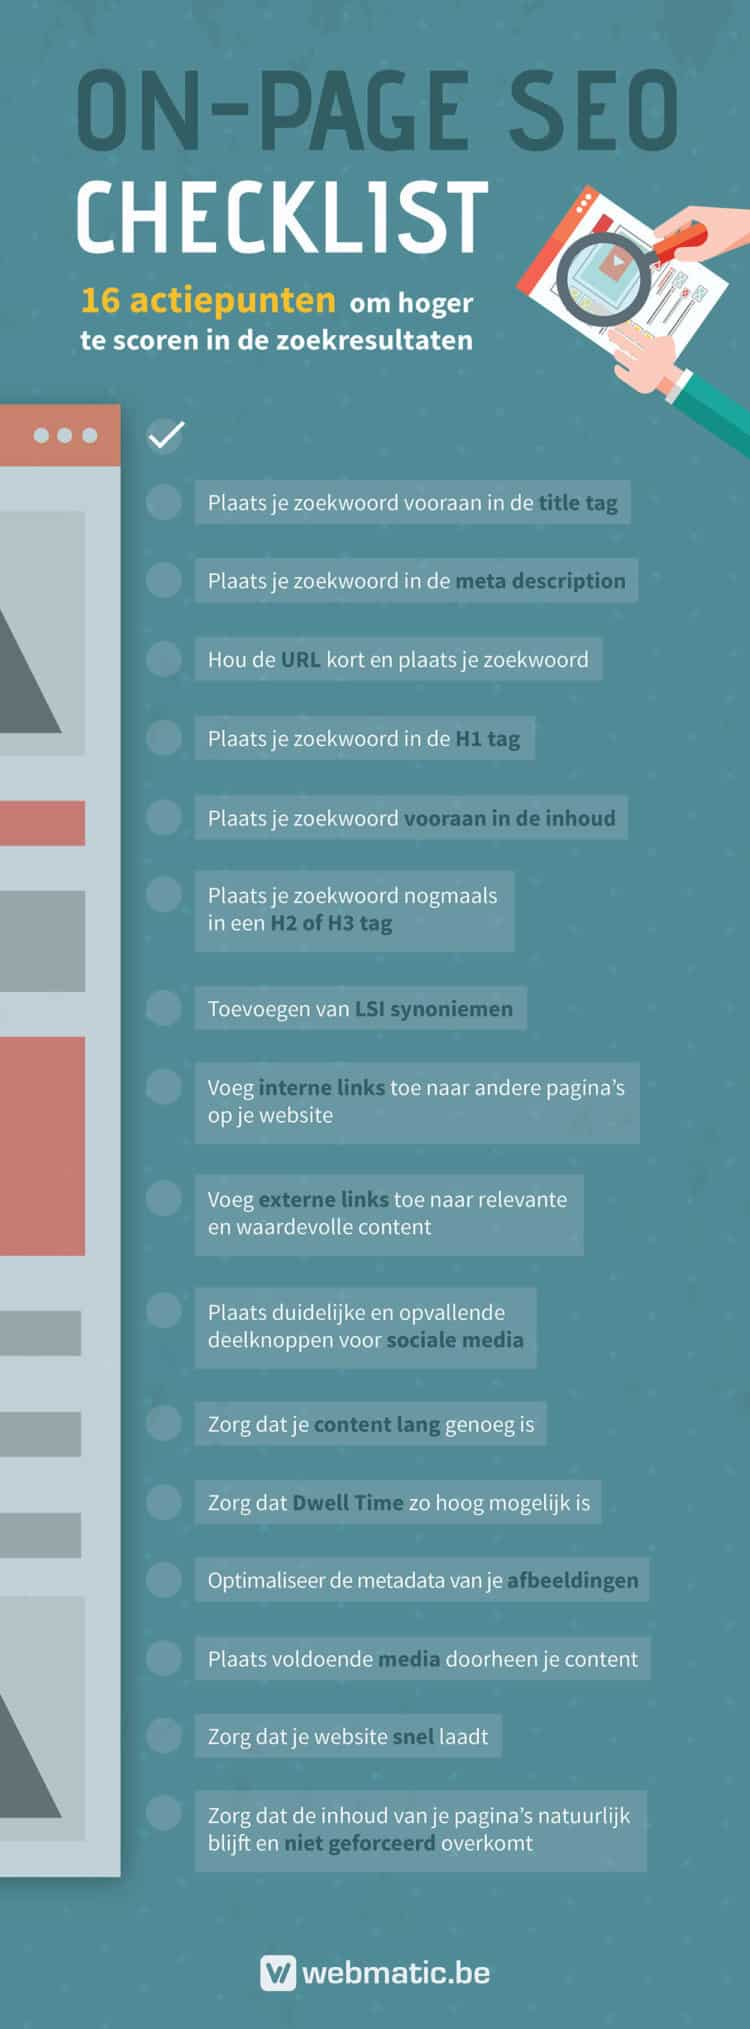 Infographic voor de On-Page SEO Checklist editie 2018